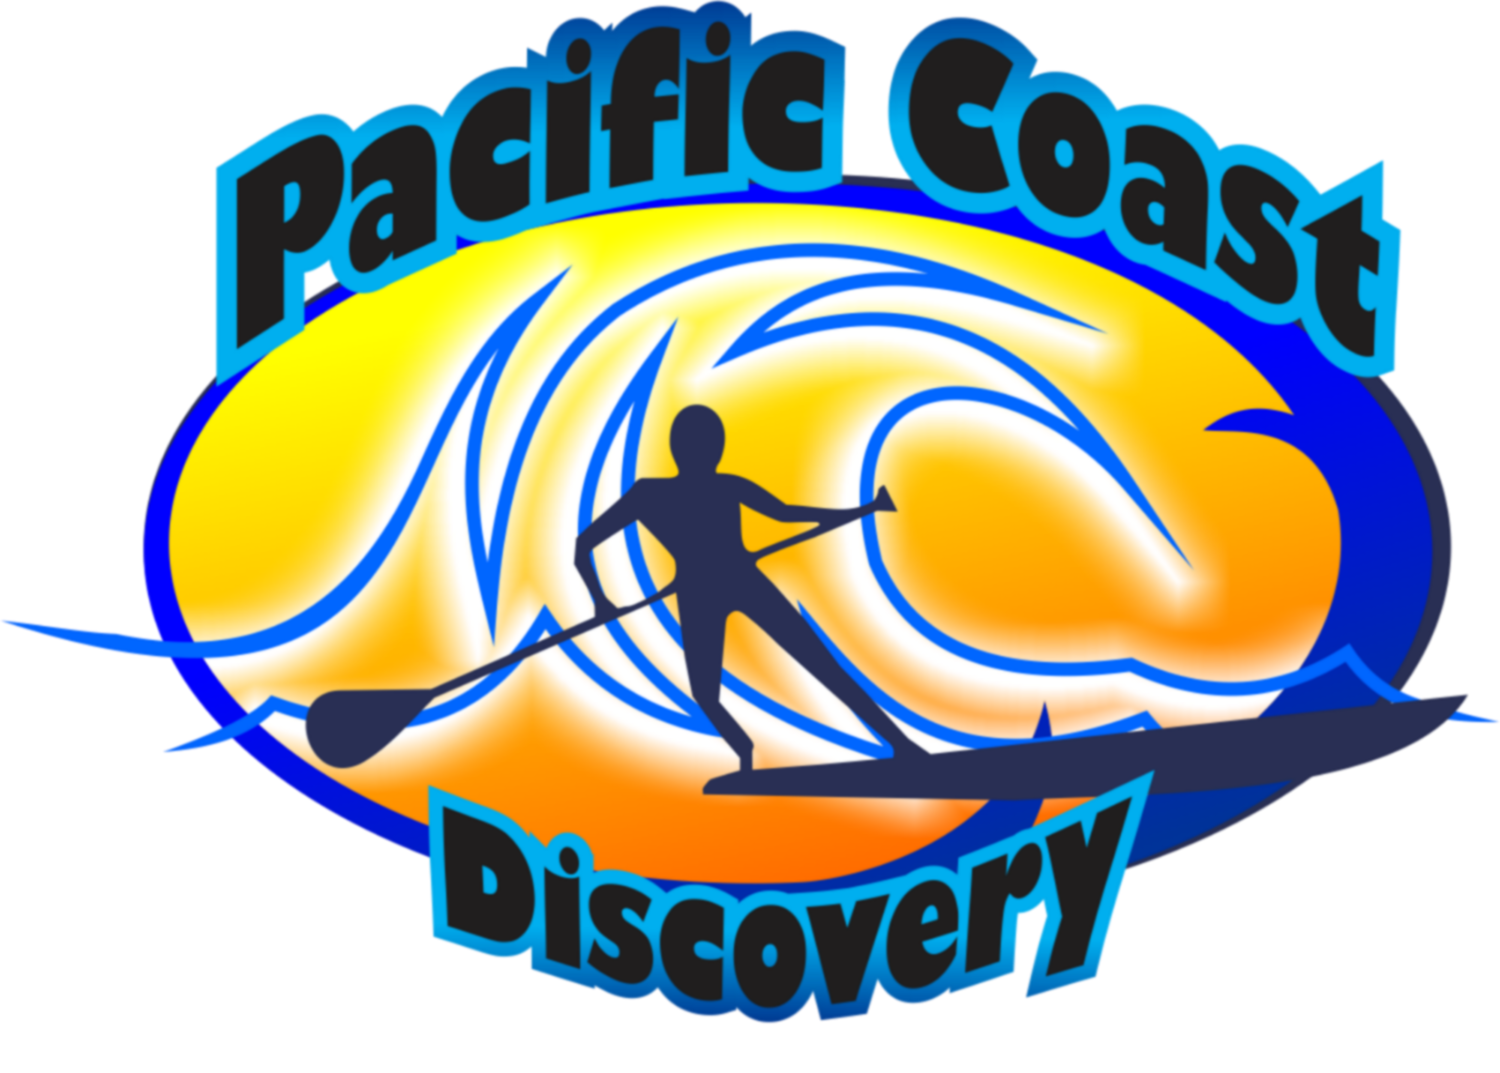 Pacific clipart #13, Download drawings